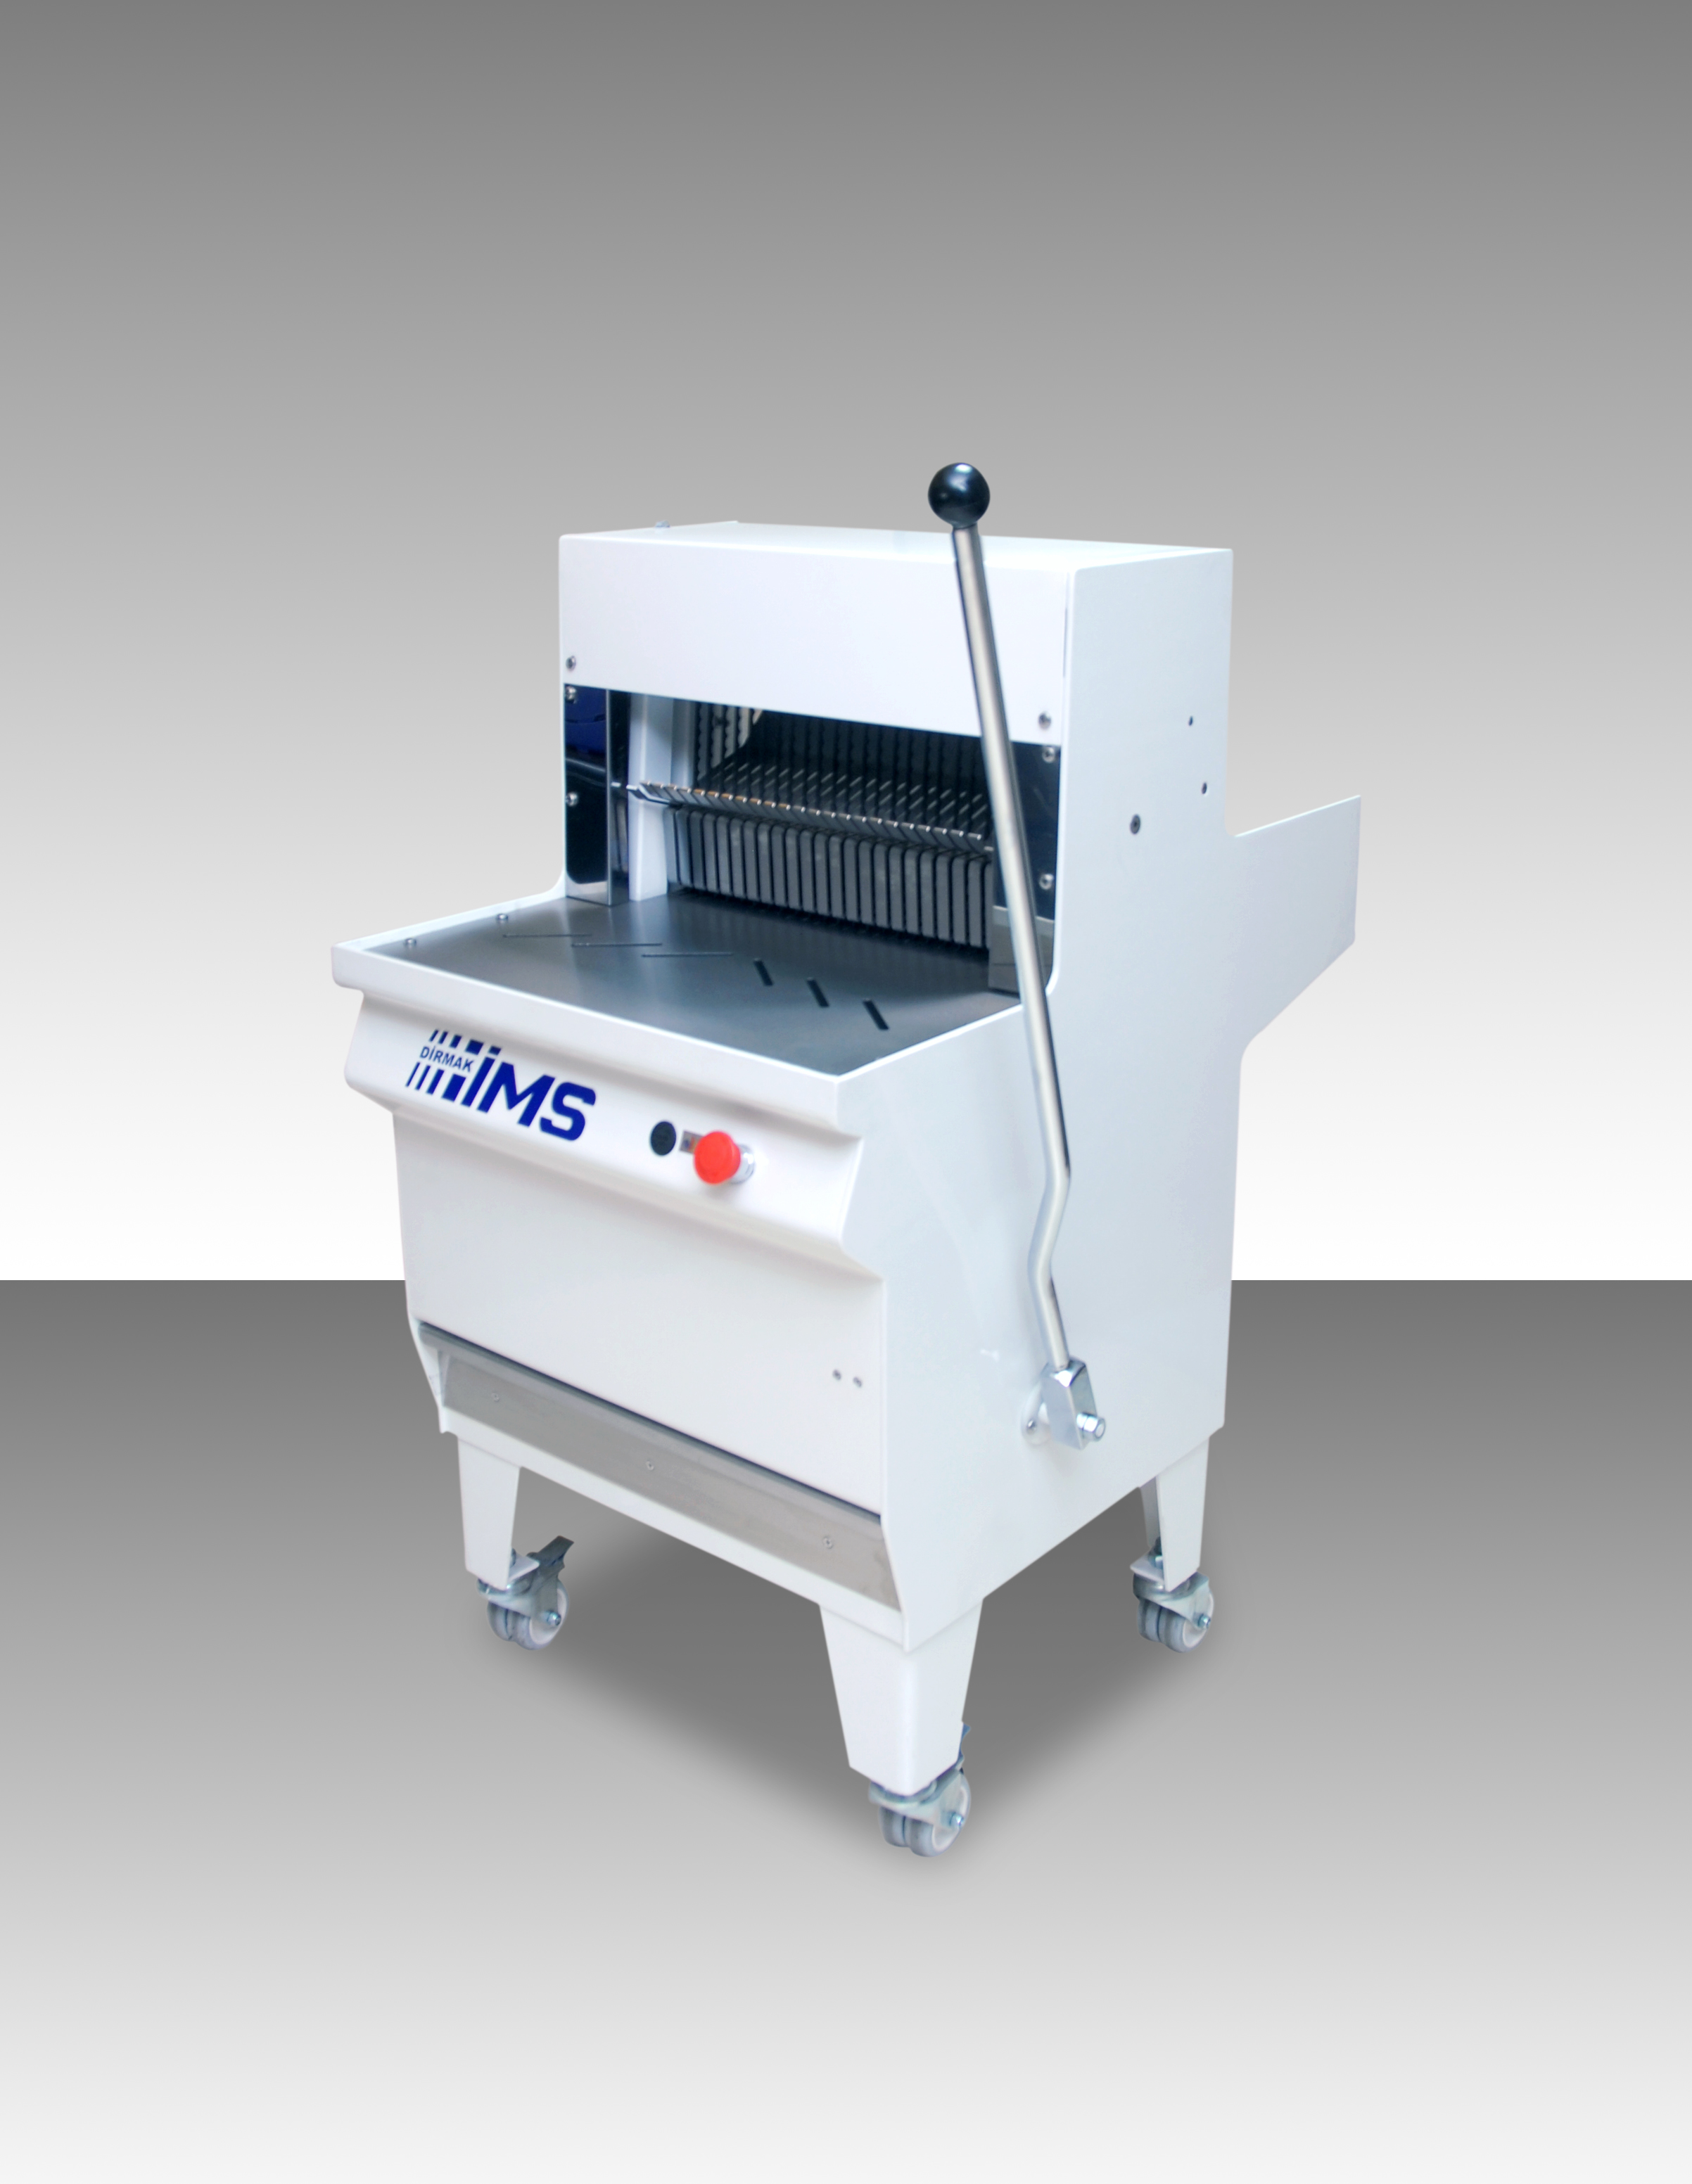 Suitable for professional use, IEK 500 Bread Slice